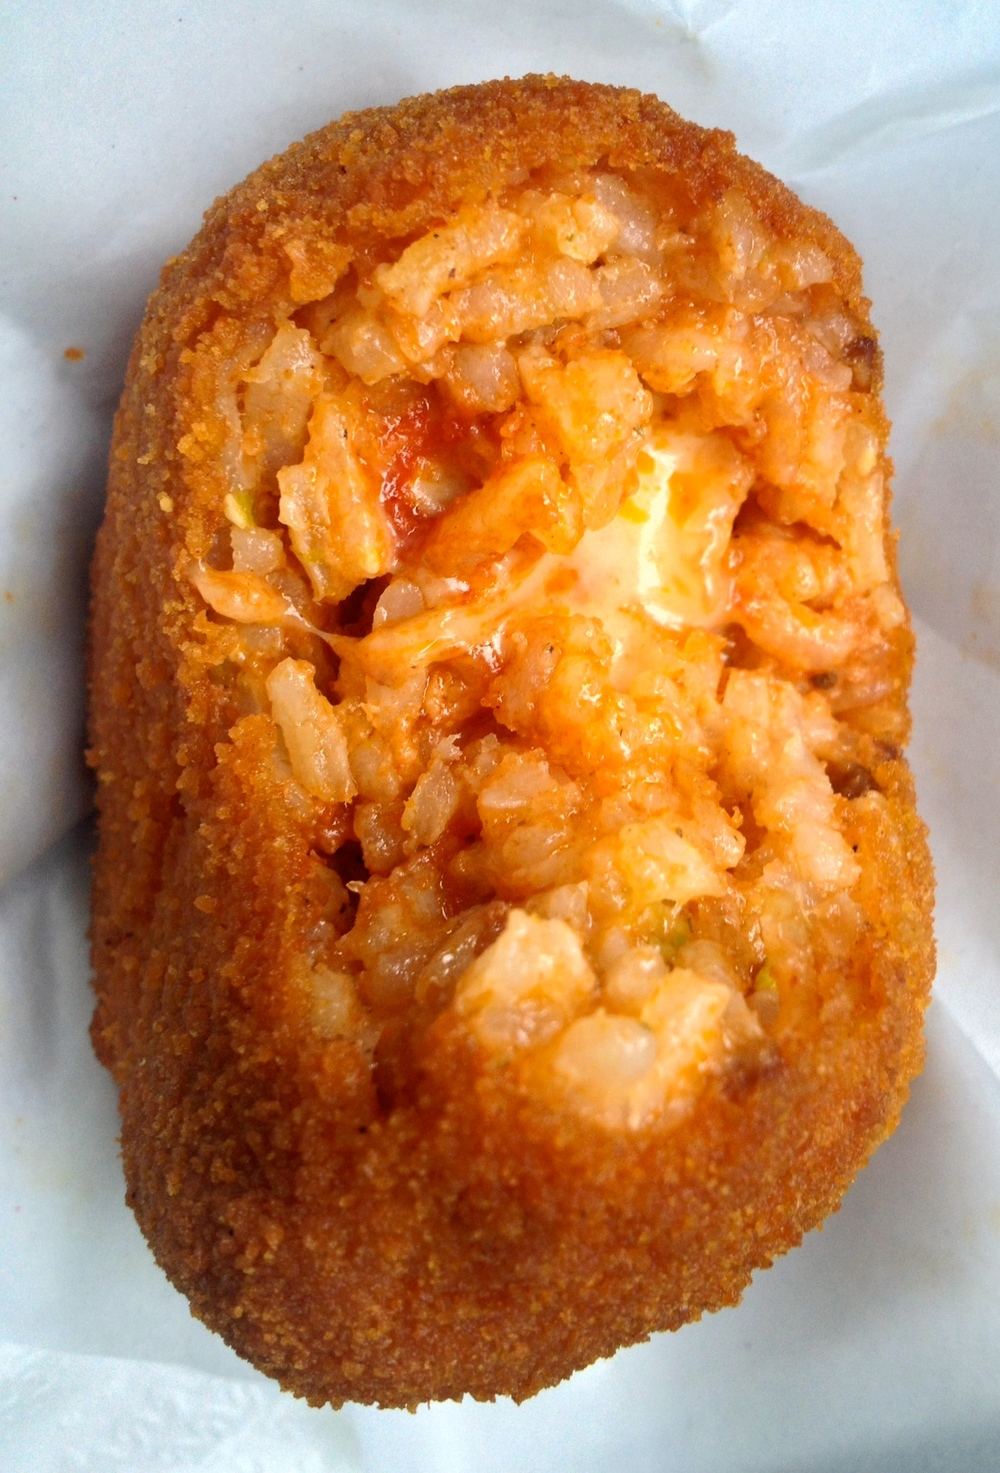 Fried arancini (Italian cheese and meat rice ball)